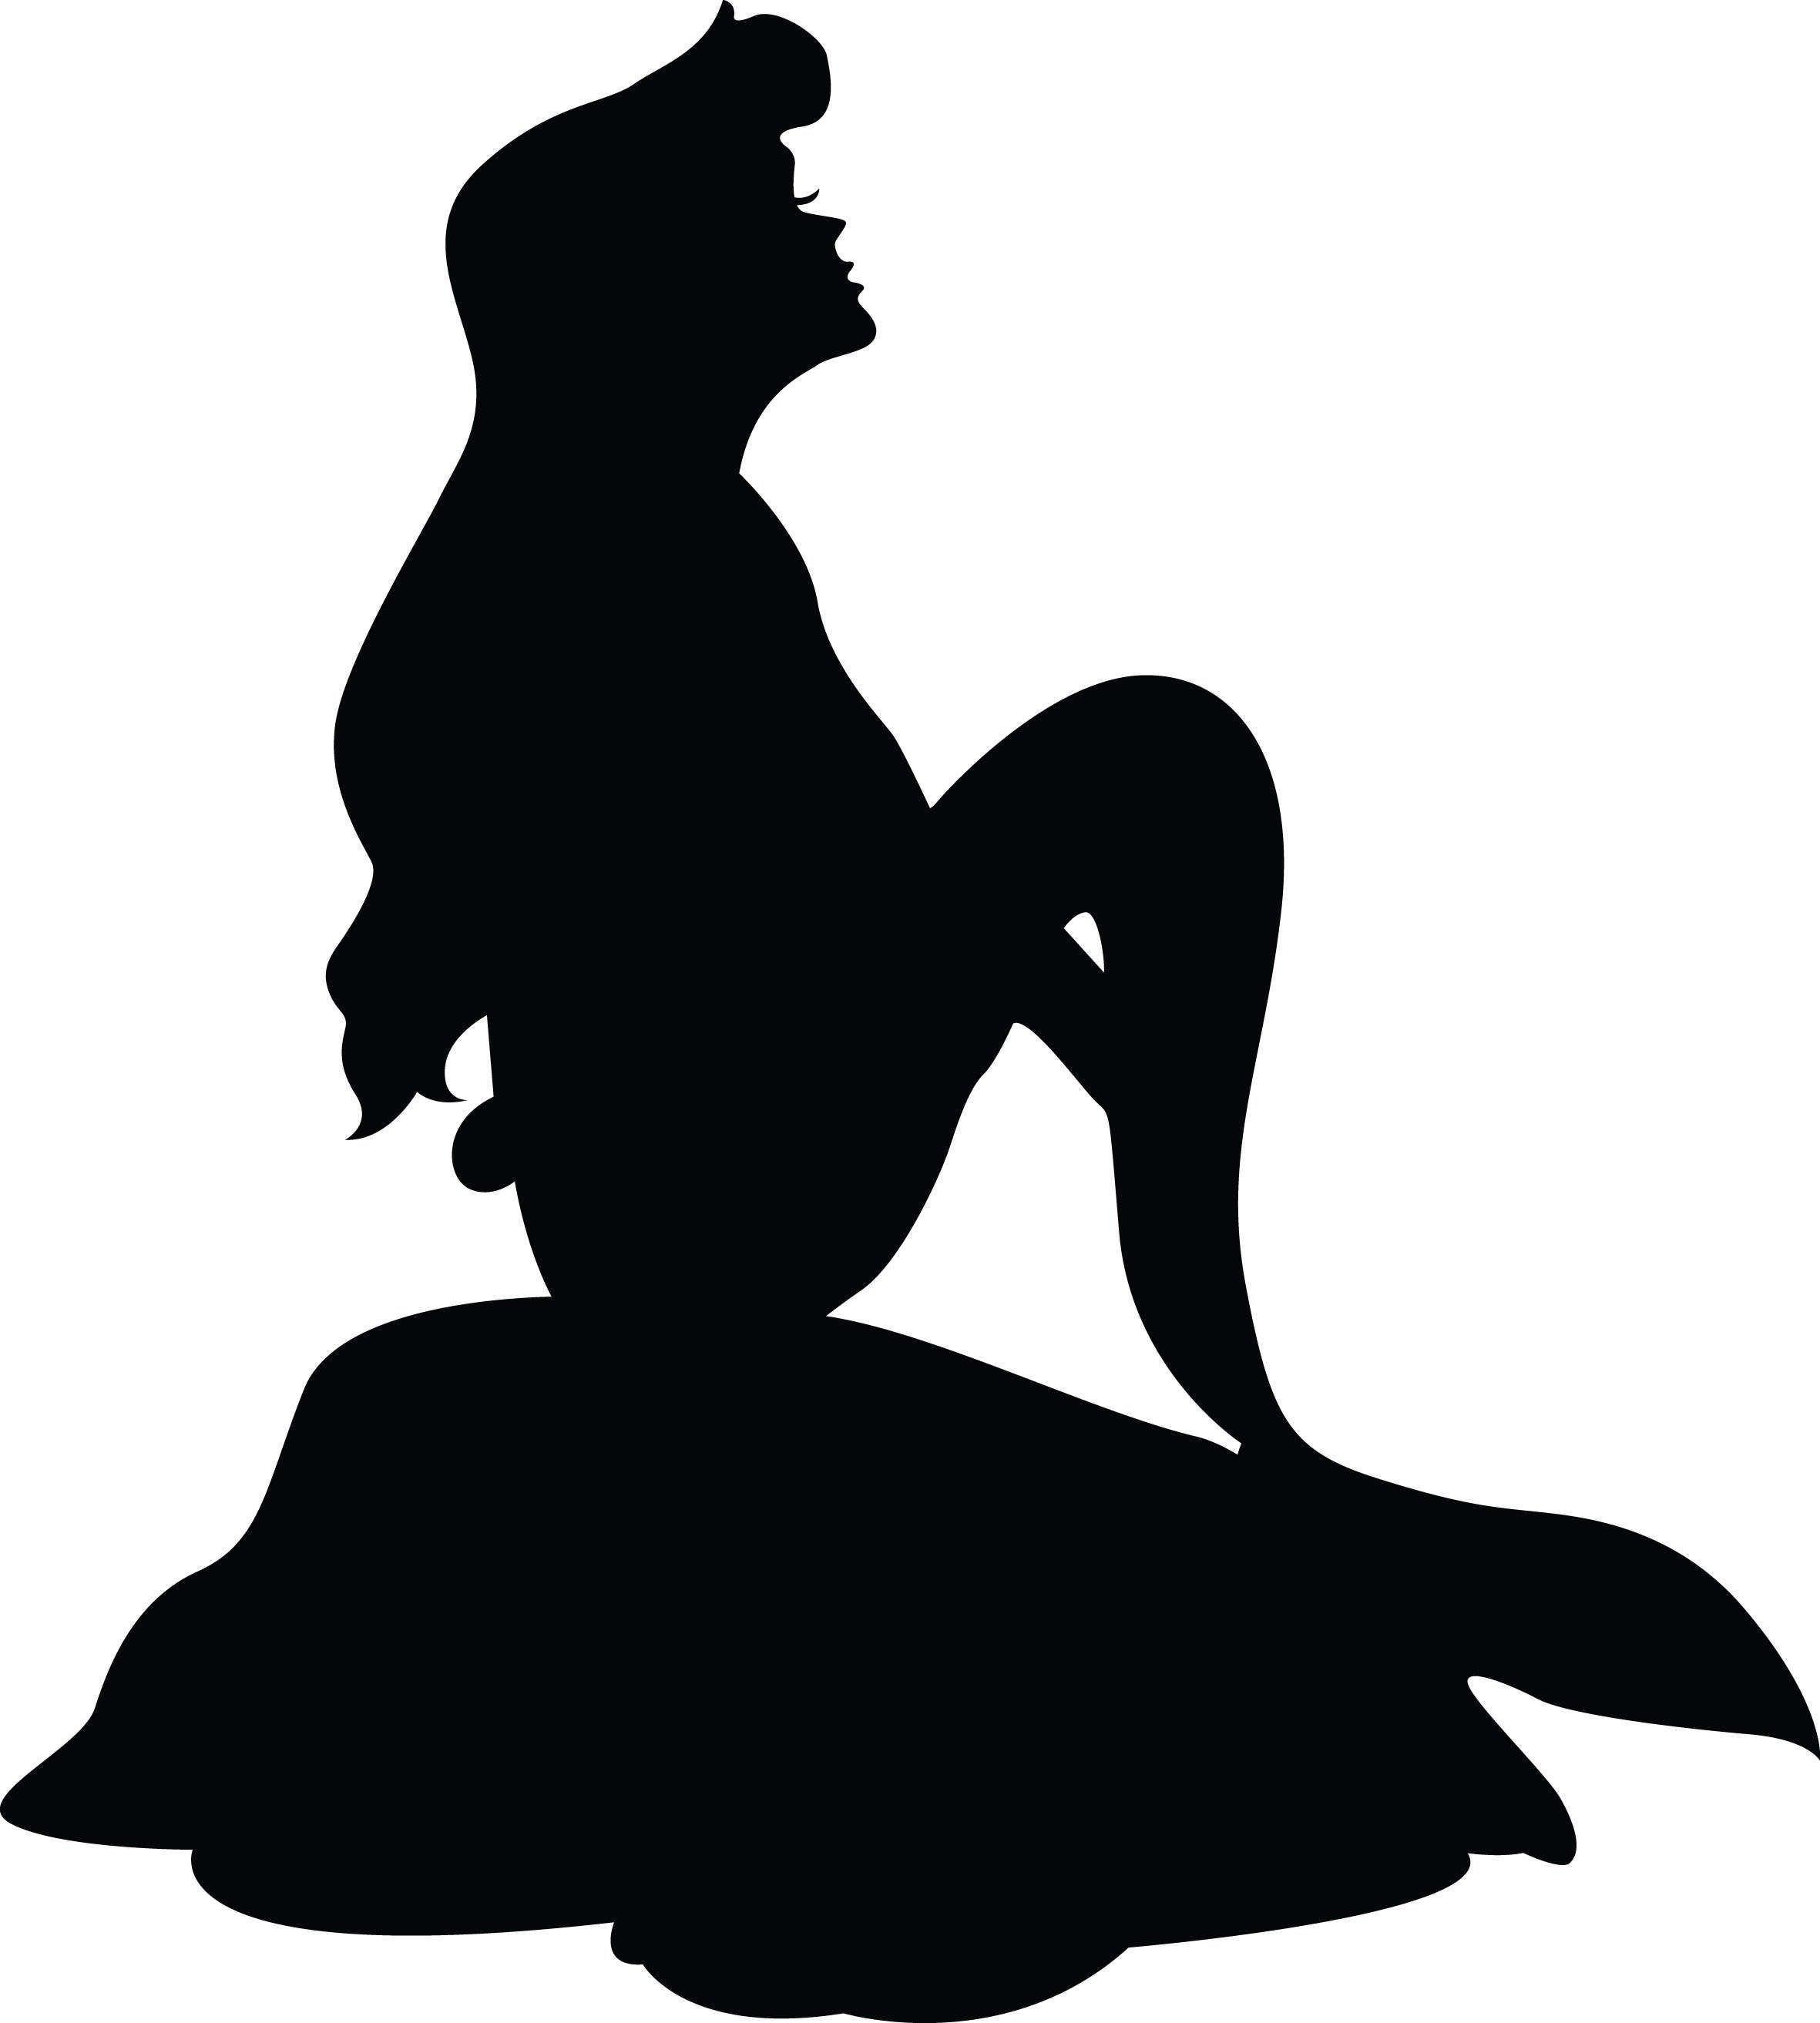 Ariel The Little Mermaid Disney High Definition Silhouettes Little Mermaid Silhouette Disney Silhouette Painting Disney Princess Silhouette Wanted to try something different :3 umm.i still dunno what to write in this box so ill just umm do what other people do. little mermaid silhouette disney